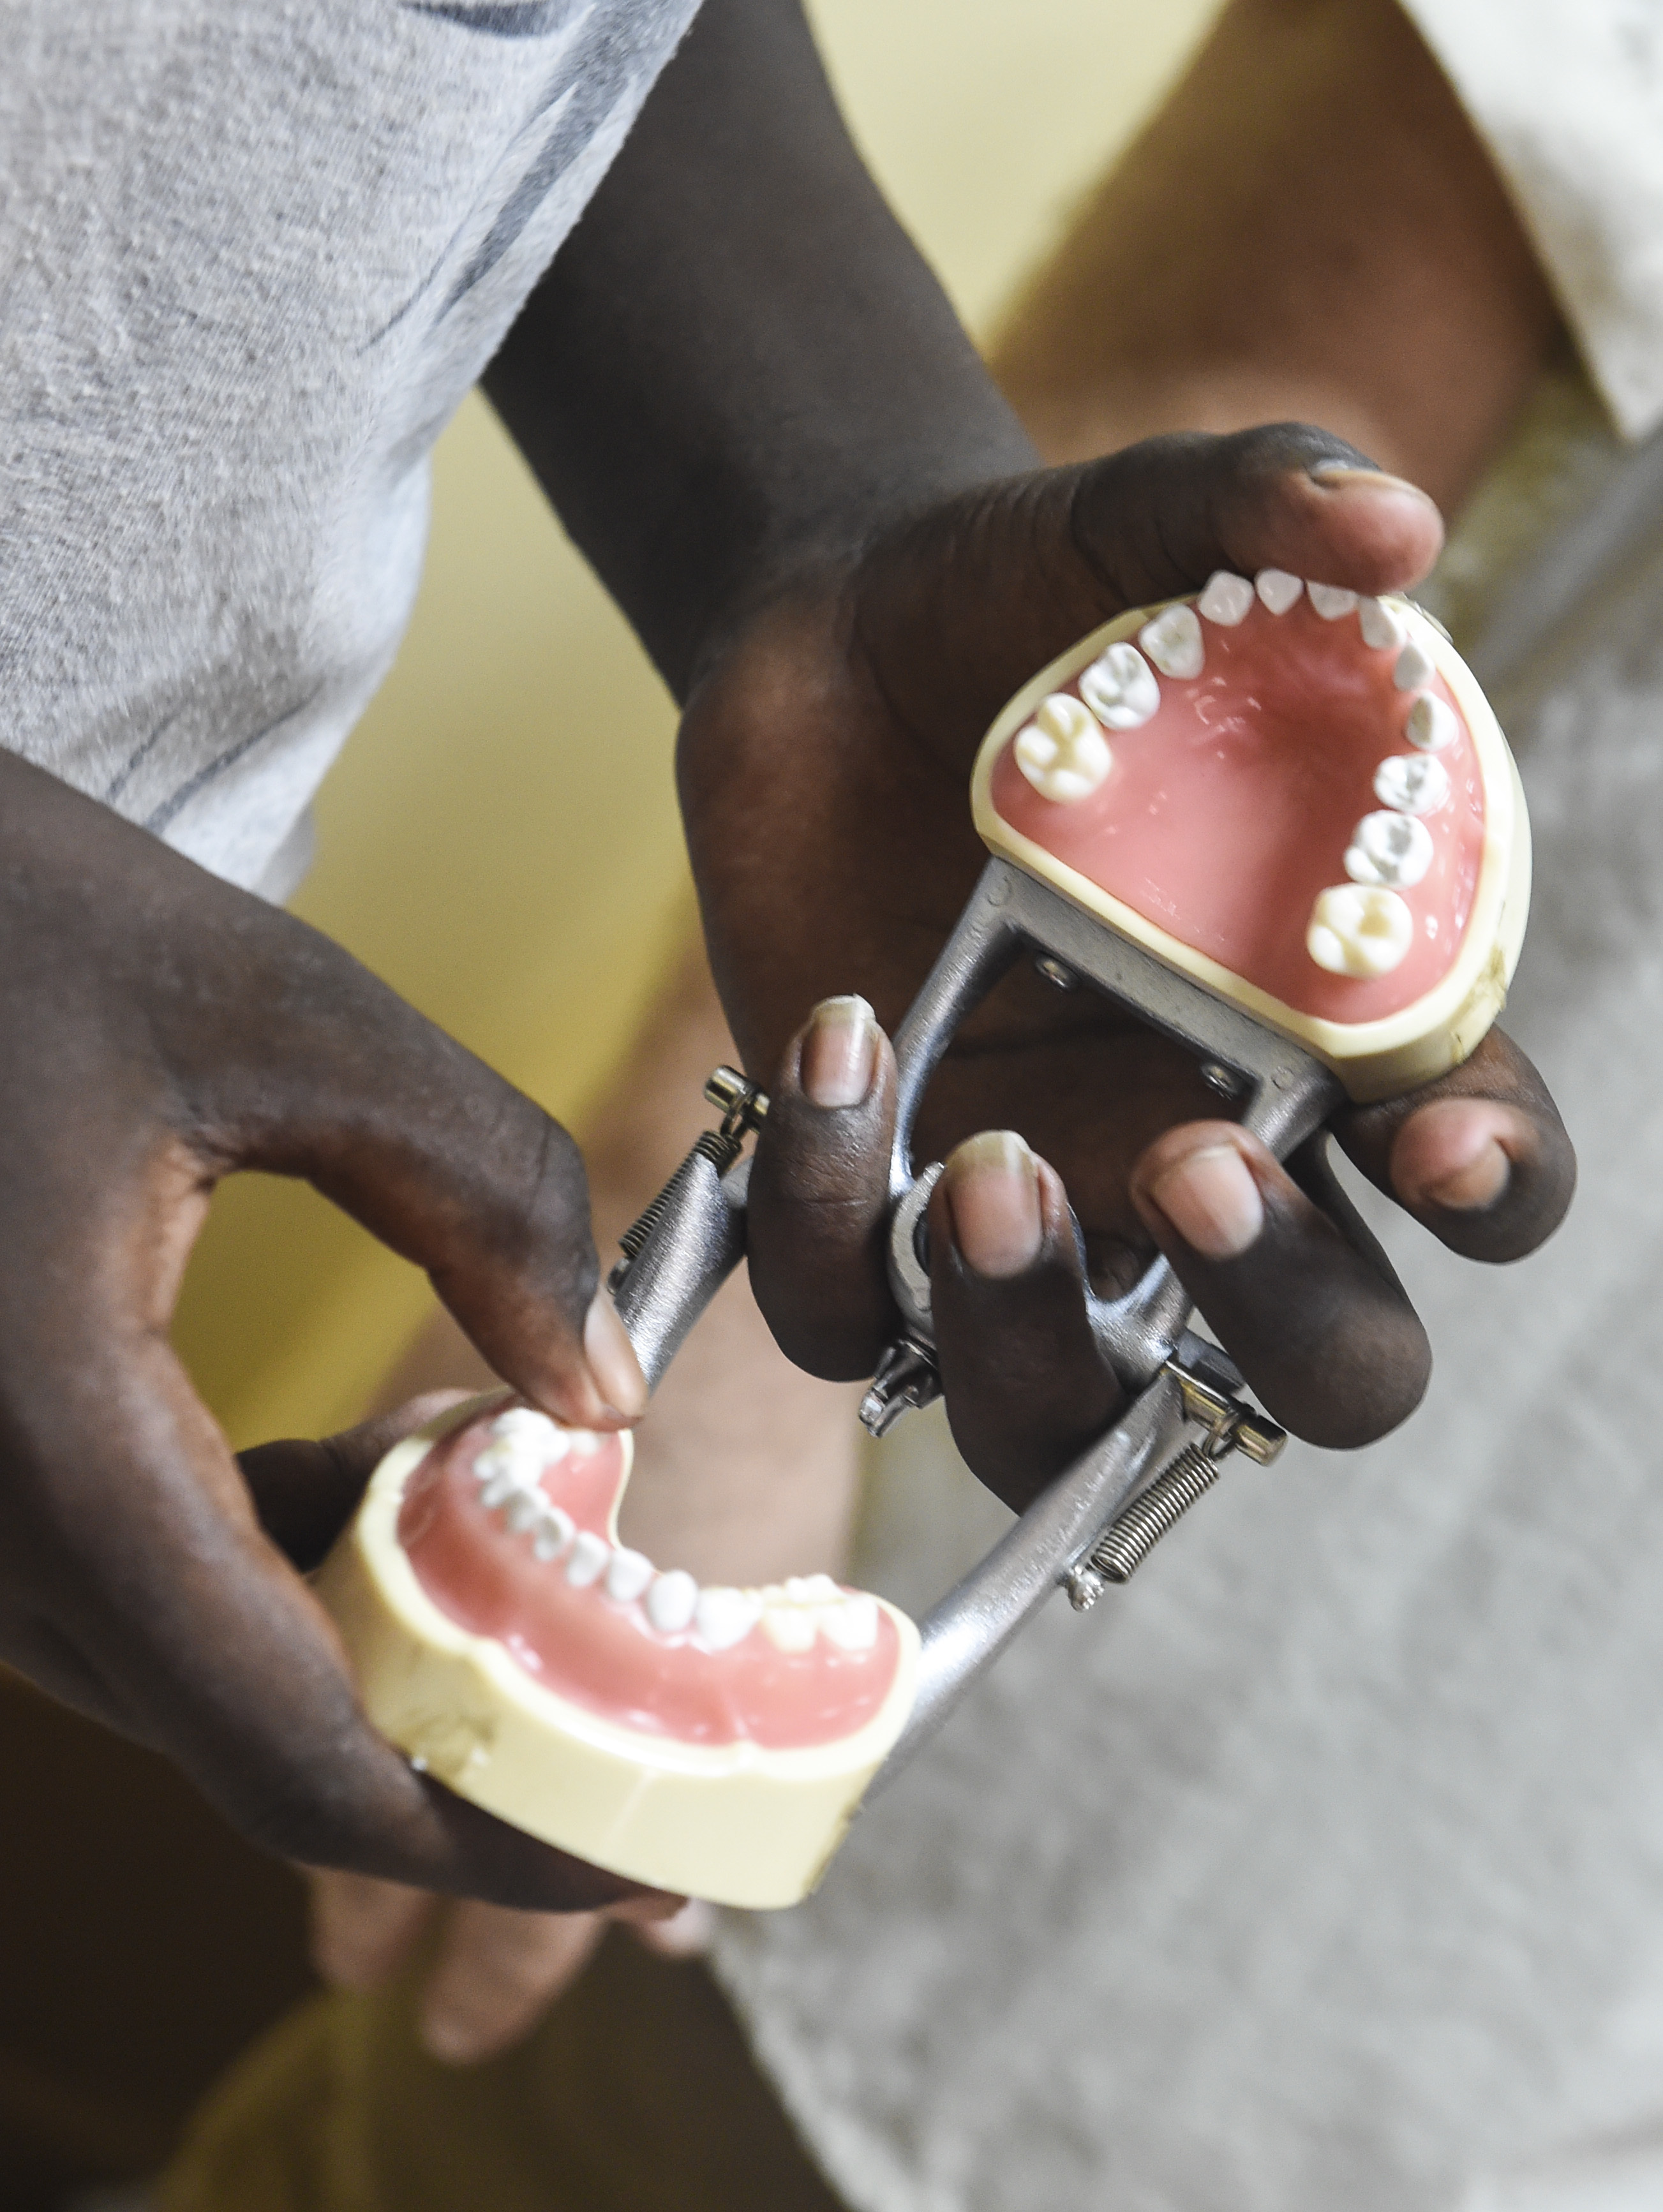 A child uses a dental typodont to count the number of teeth in an average 7-year-old mouth during an oral hygiene demonstration at Caritas Djibouti, a humanitarian organization in Djibouti City, Djibouti, Aug. 8, 2017. In support of the Combined Joint Task Force-Horn of Africa's efforts to promote regional security and stability, the 443rd Civil Affairs Battalion functional specialty team conducted multiple oral hygiene instruction classes for approximately 60 children from the local area. (U.S. Air Force photo by Staff Sgt. Eboni Prince)